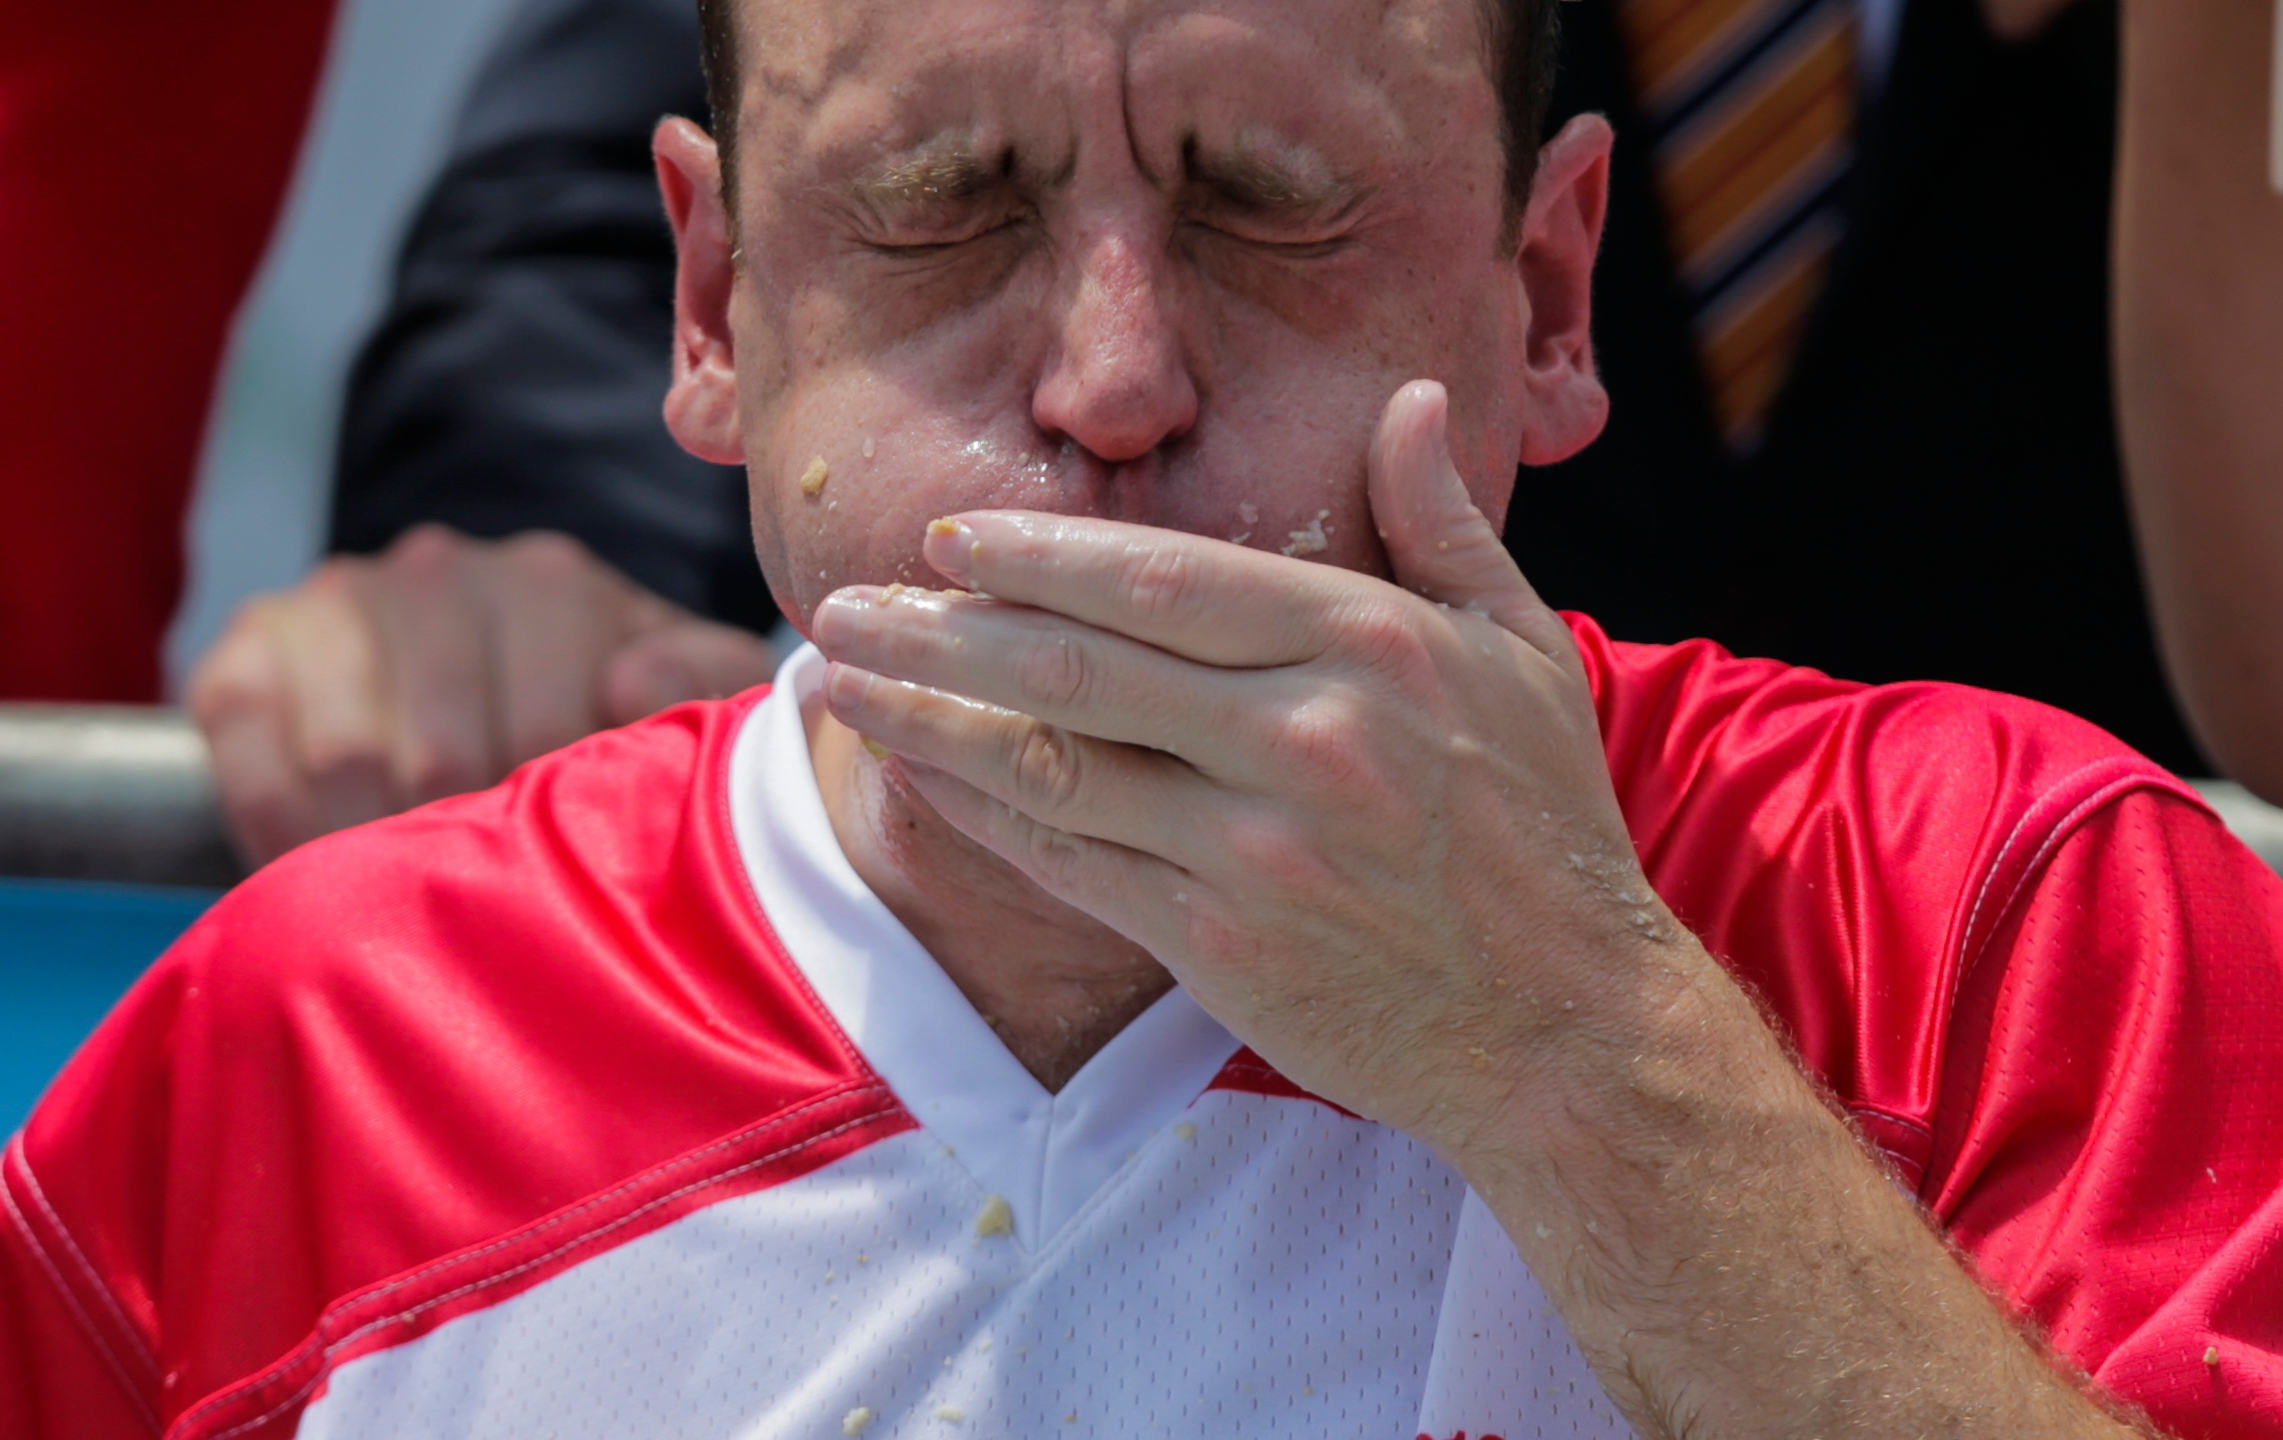 Joey Chestnut competes in the annual Nathan's Hot Dog Eating Contest on July 4, 2018 in the Coney Island neighborhood of the Brooklyn borough of New York City. (Credit: Eduardo Munoz Alvarez/Getty Images)